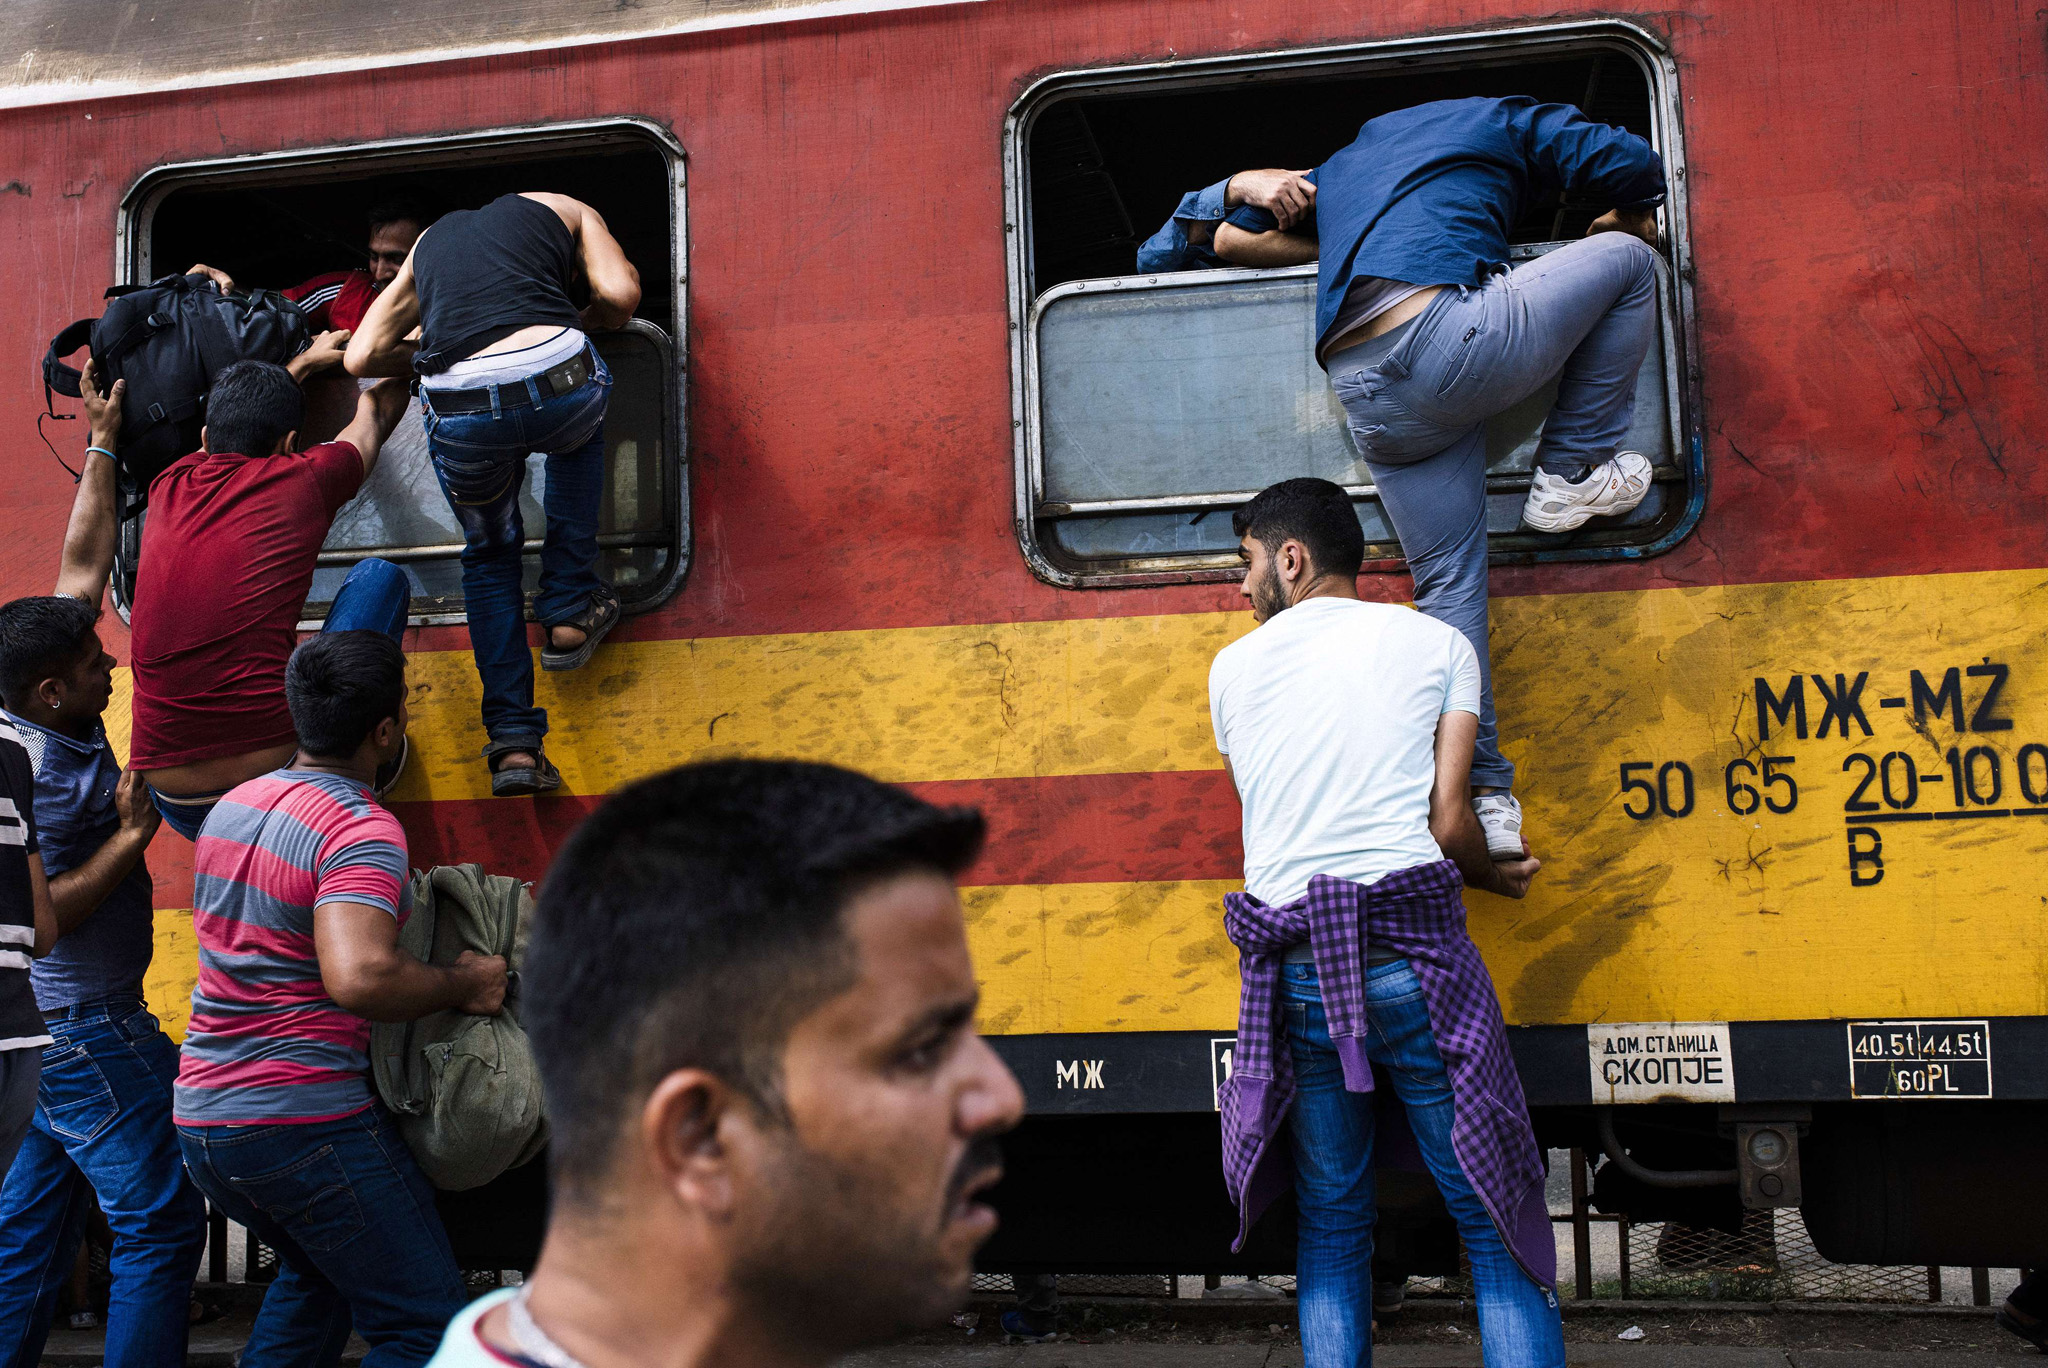 Migrants try to get on a train heading to the border with Serbia at the train station in Gevgelija, on the Macedonian-Greek border. According to the UN, some 224,000 migrants and refugees have crossed the Mediterranean to Europe so far this year.